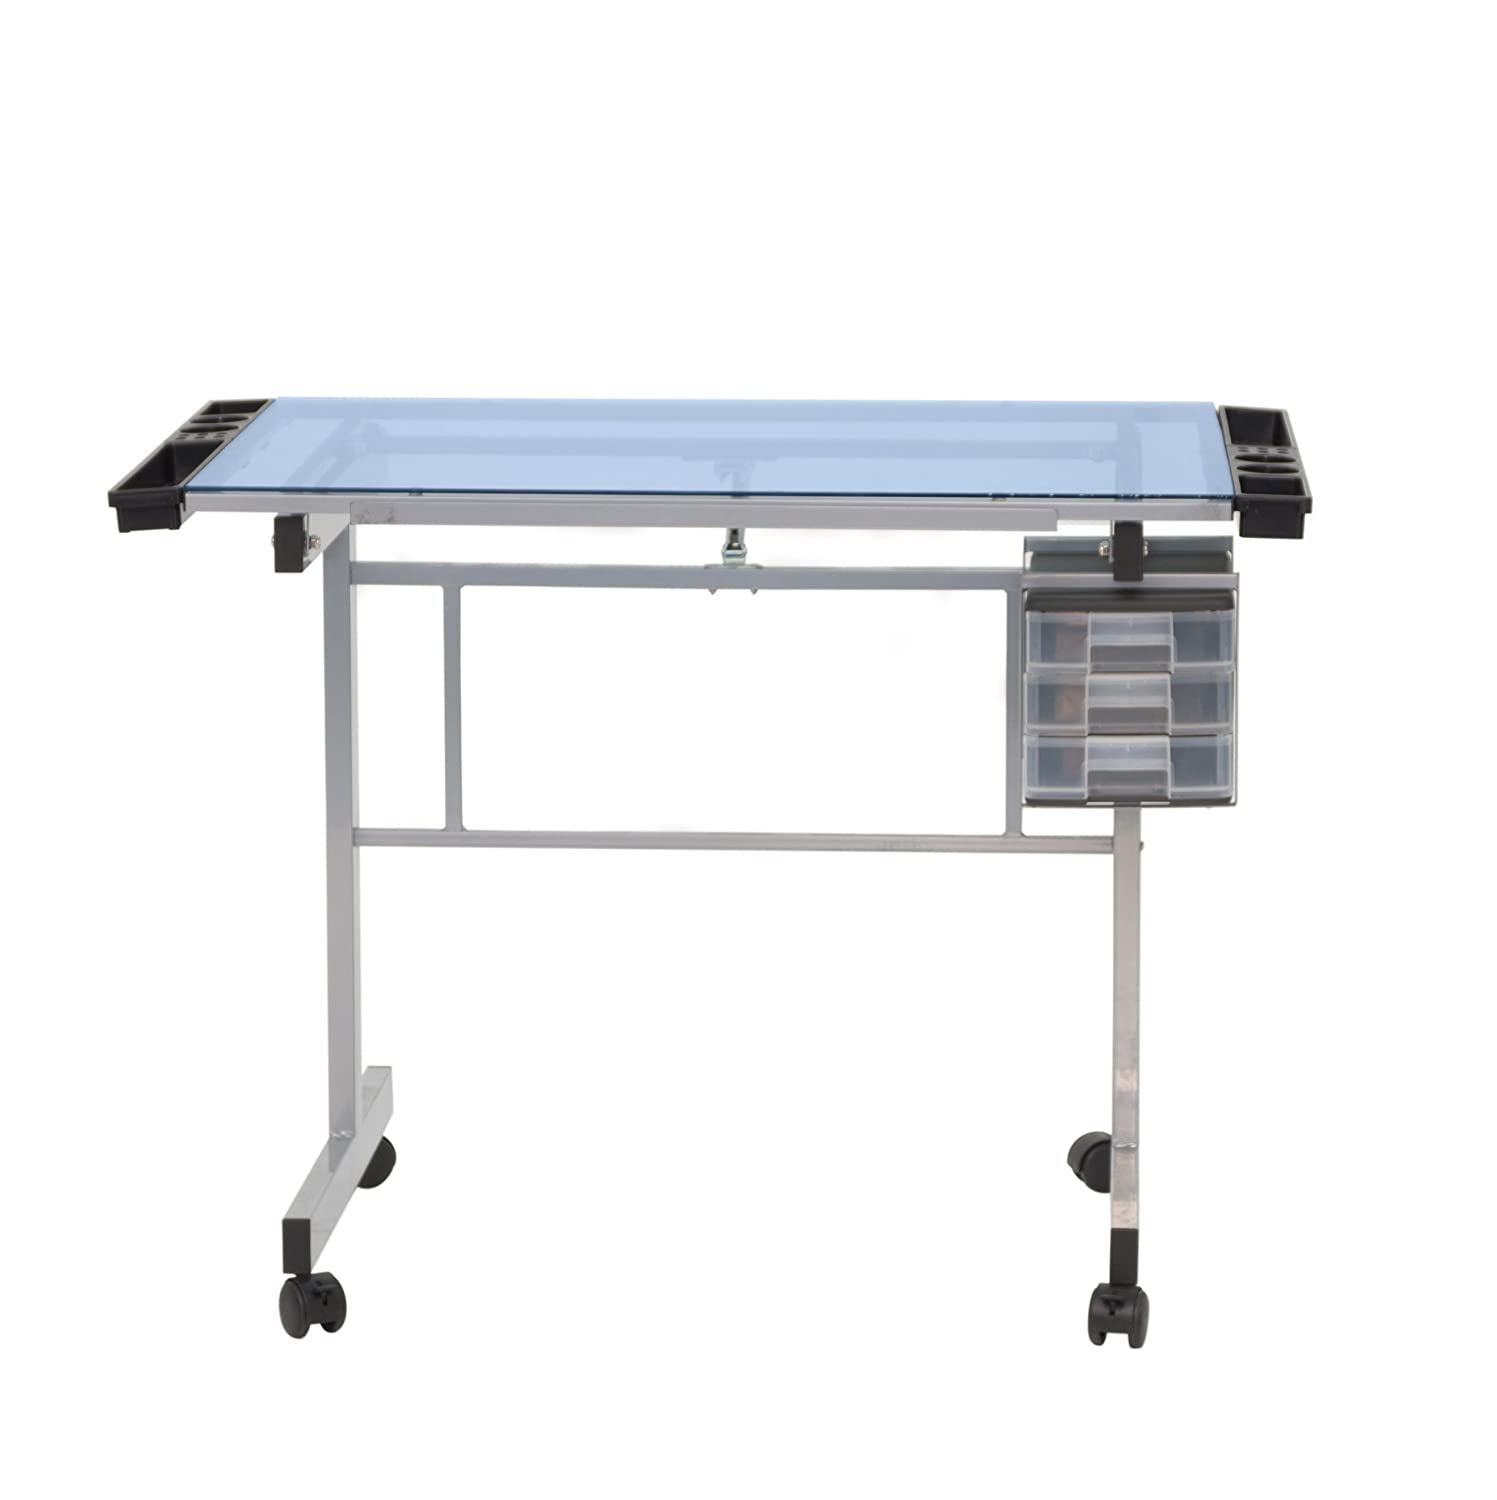 Studio designs futura craft station with glass top - Amazon Com Studio Designs 10053 Vision Craft Station In Silver Blue Glass